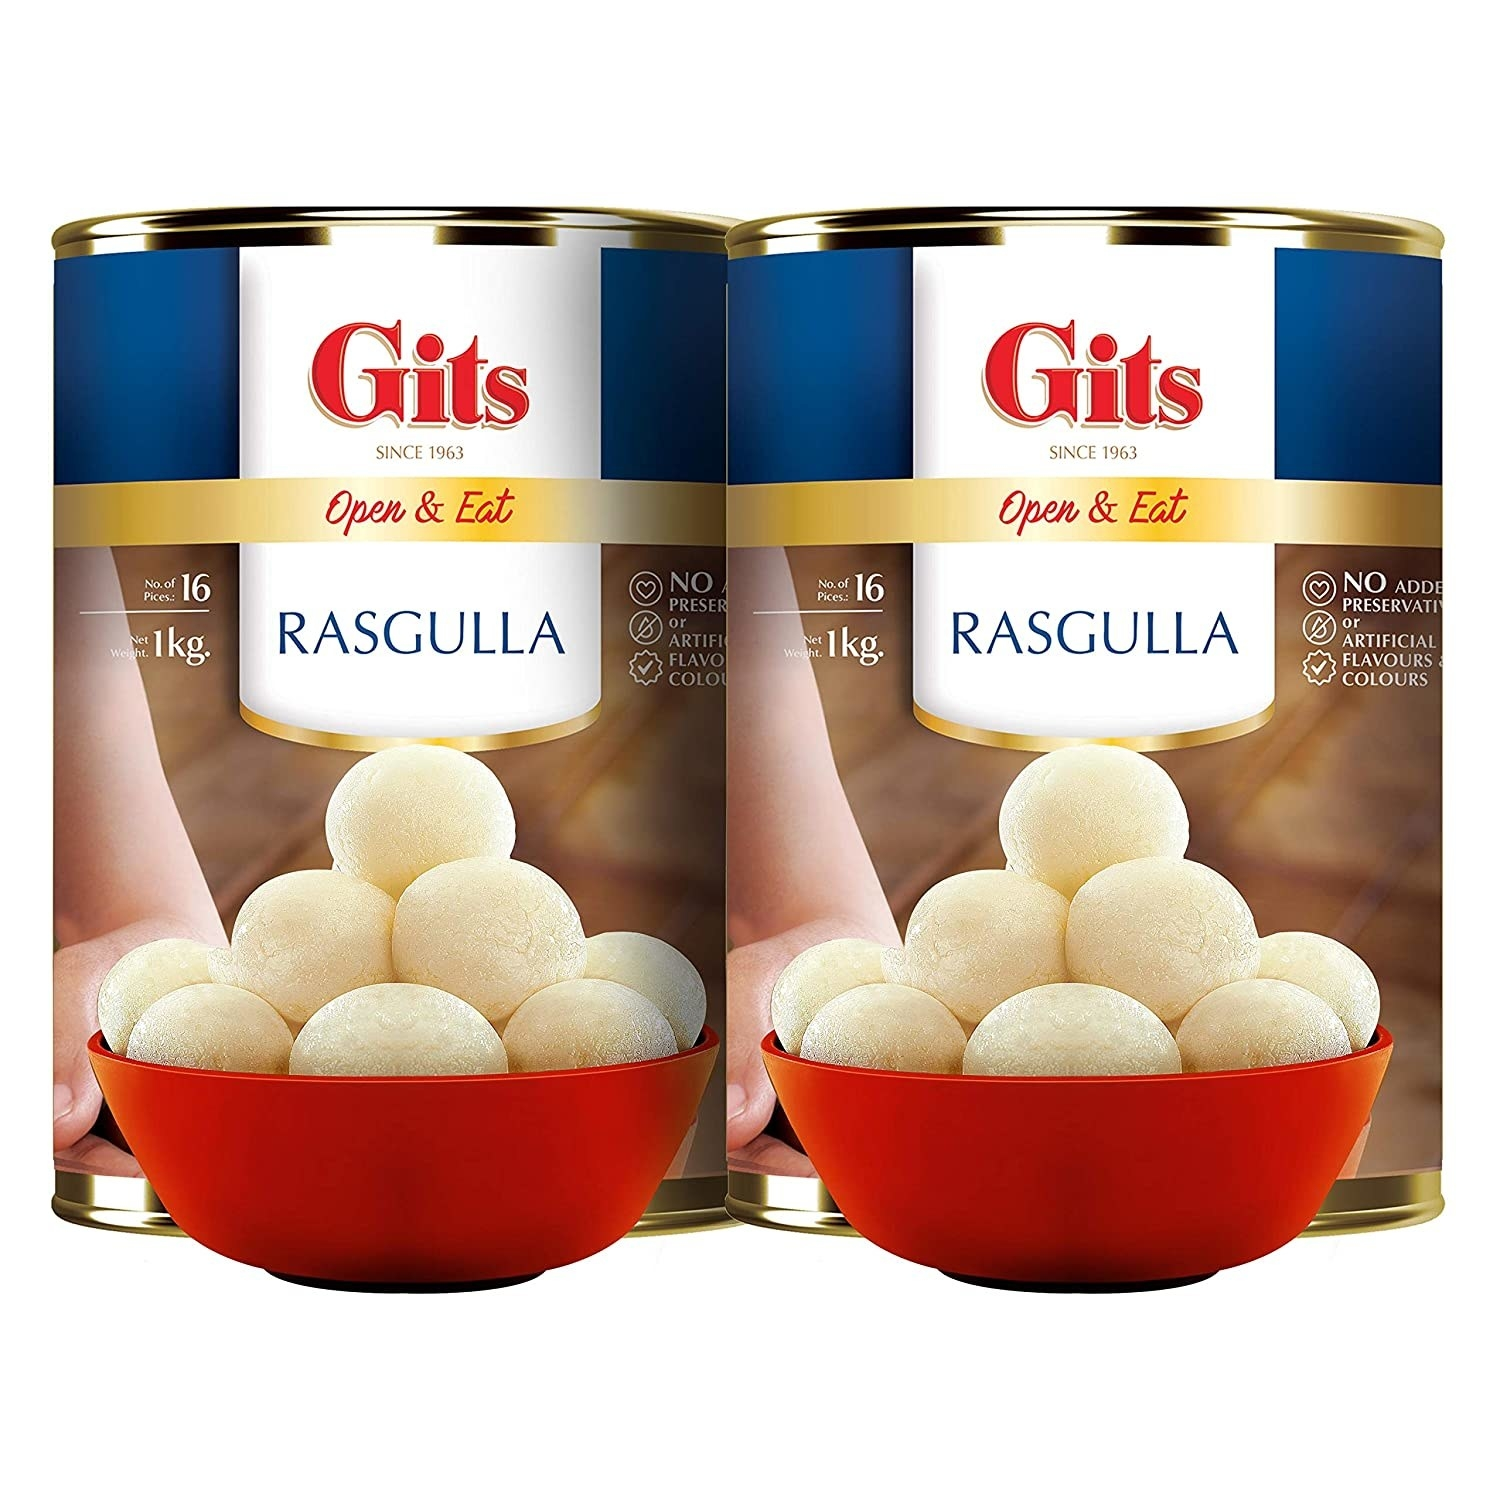 A pack of rasgullas